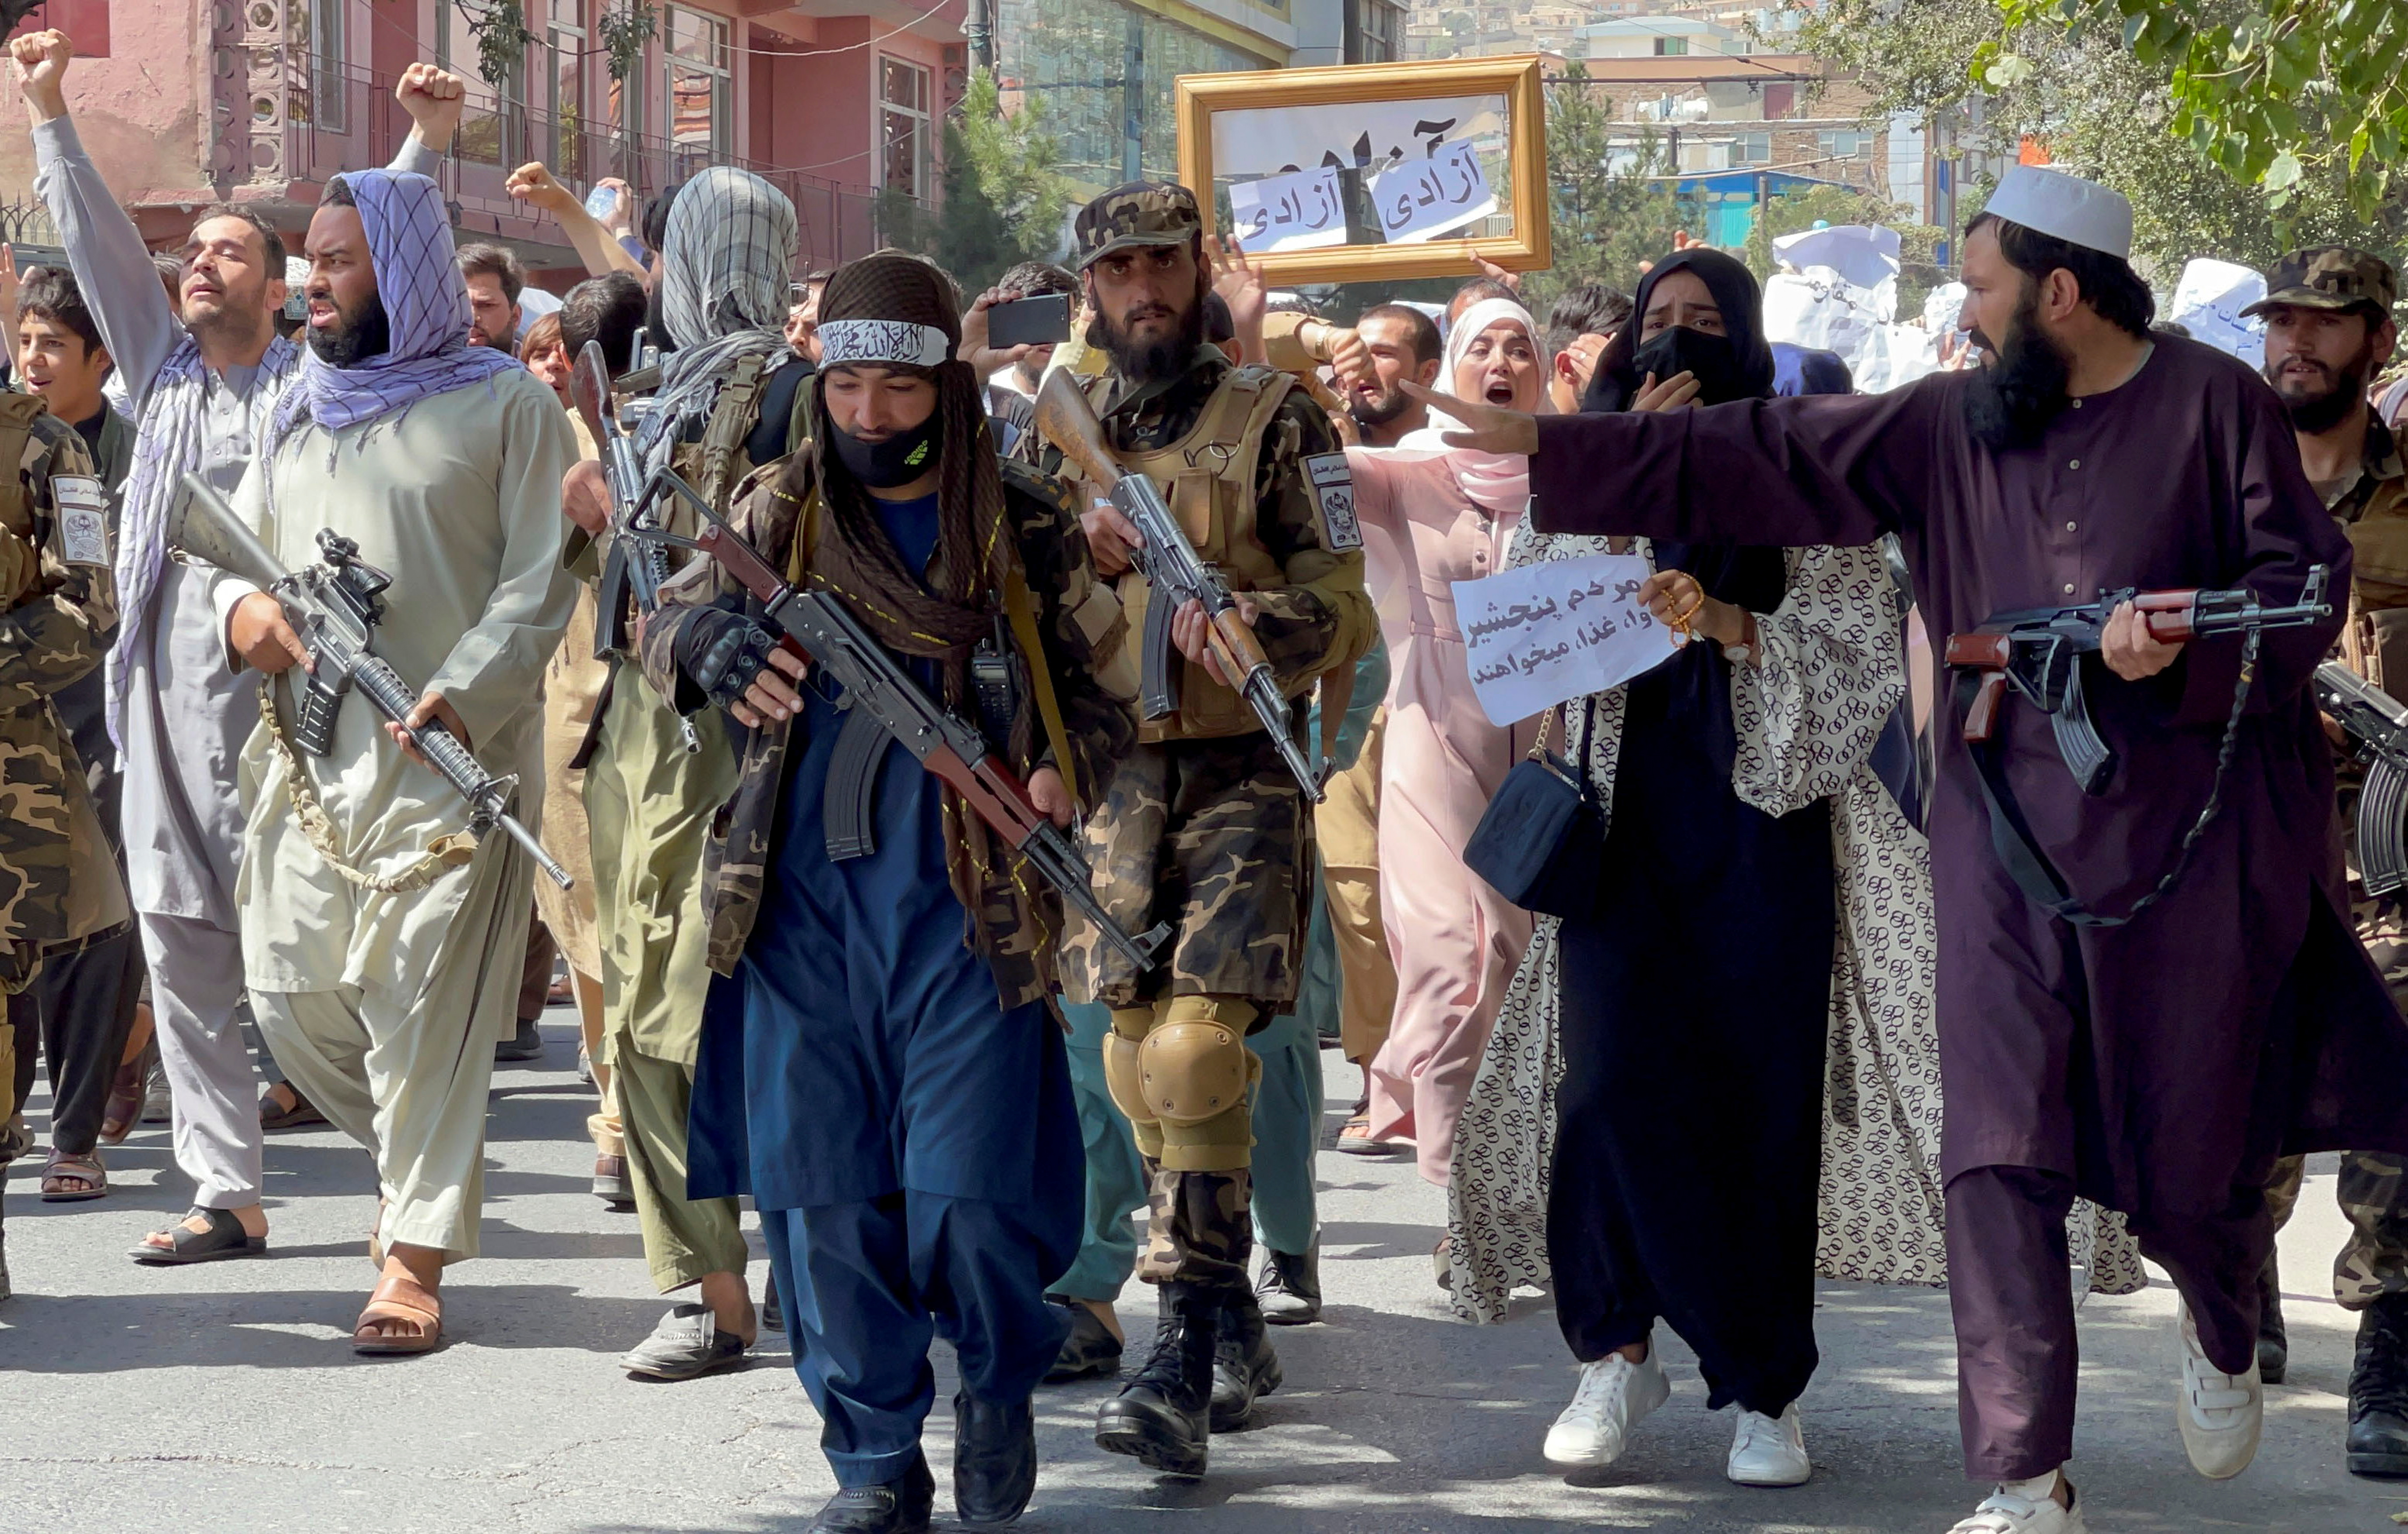 Taliban forces walk in front of Afghan demonstrators as they shout slogans during an anti-Pakistan protest, near the Pakistan embassy in Kabul, Afghanistan, September 7, 2021. REUTERS/Stringer